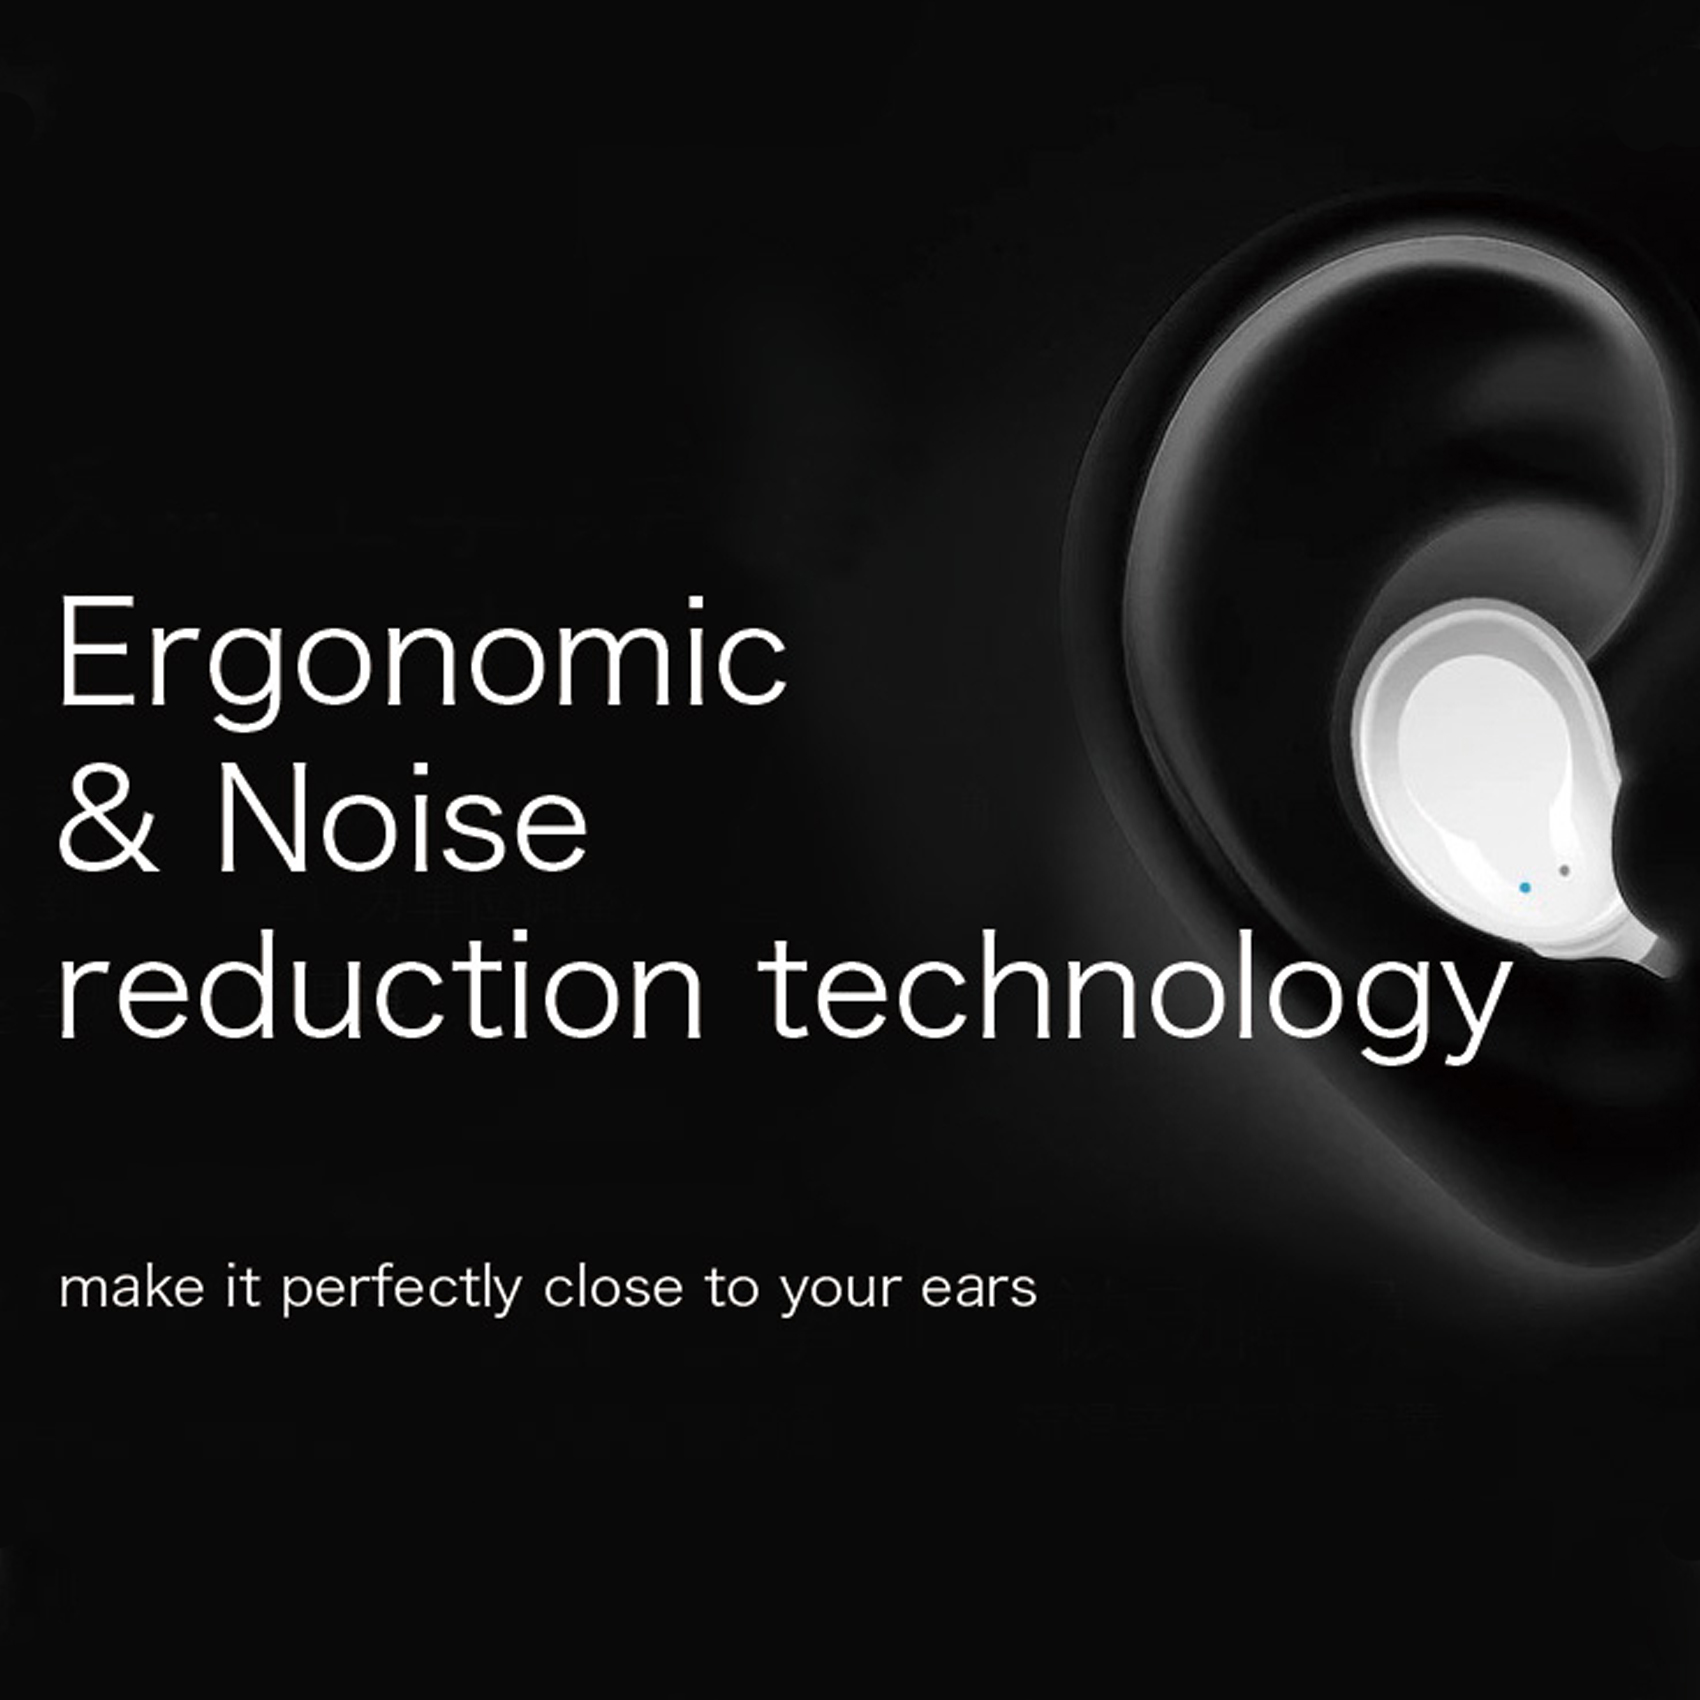 True Wireless Stereo Earbuds With Charging Case - Black